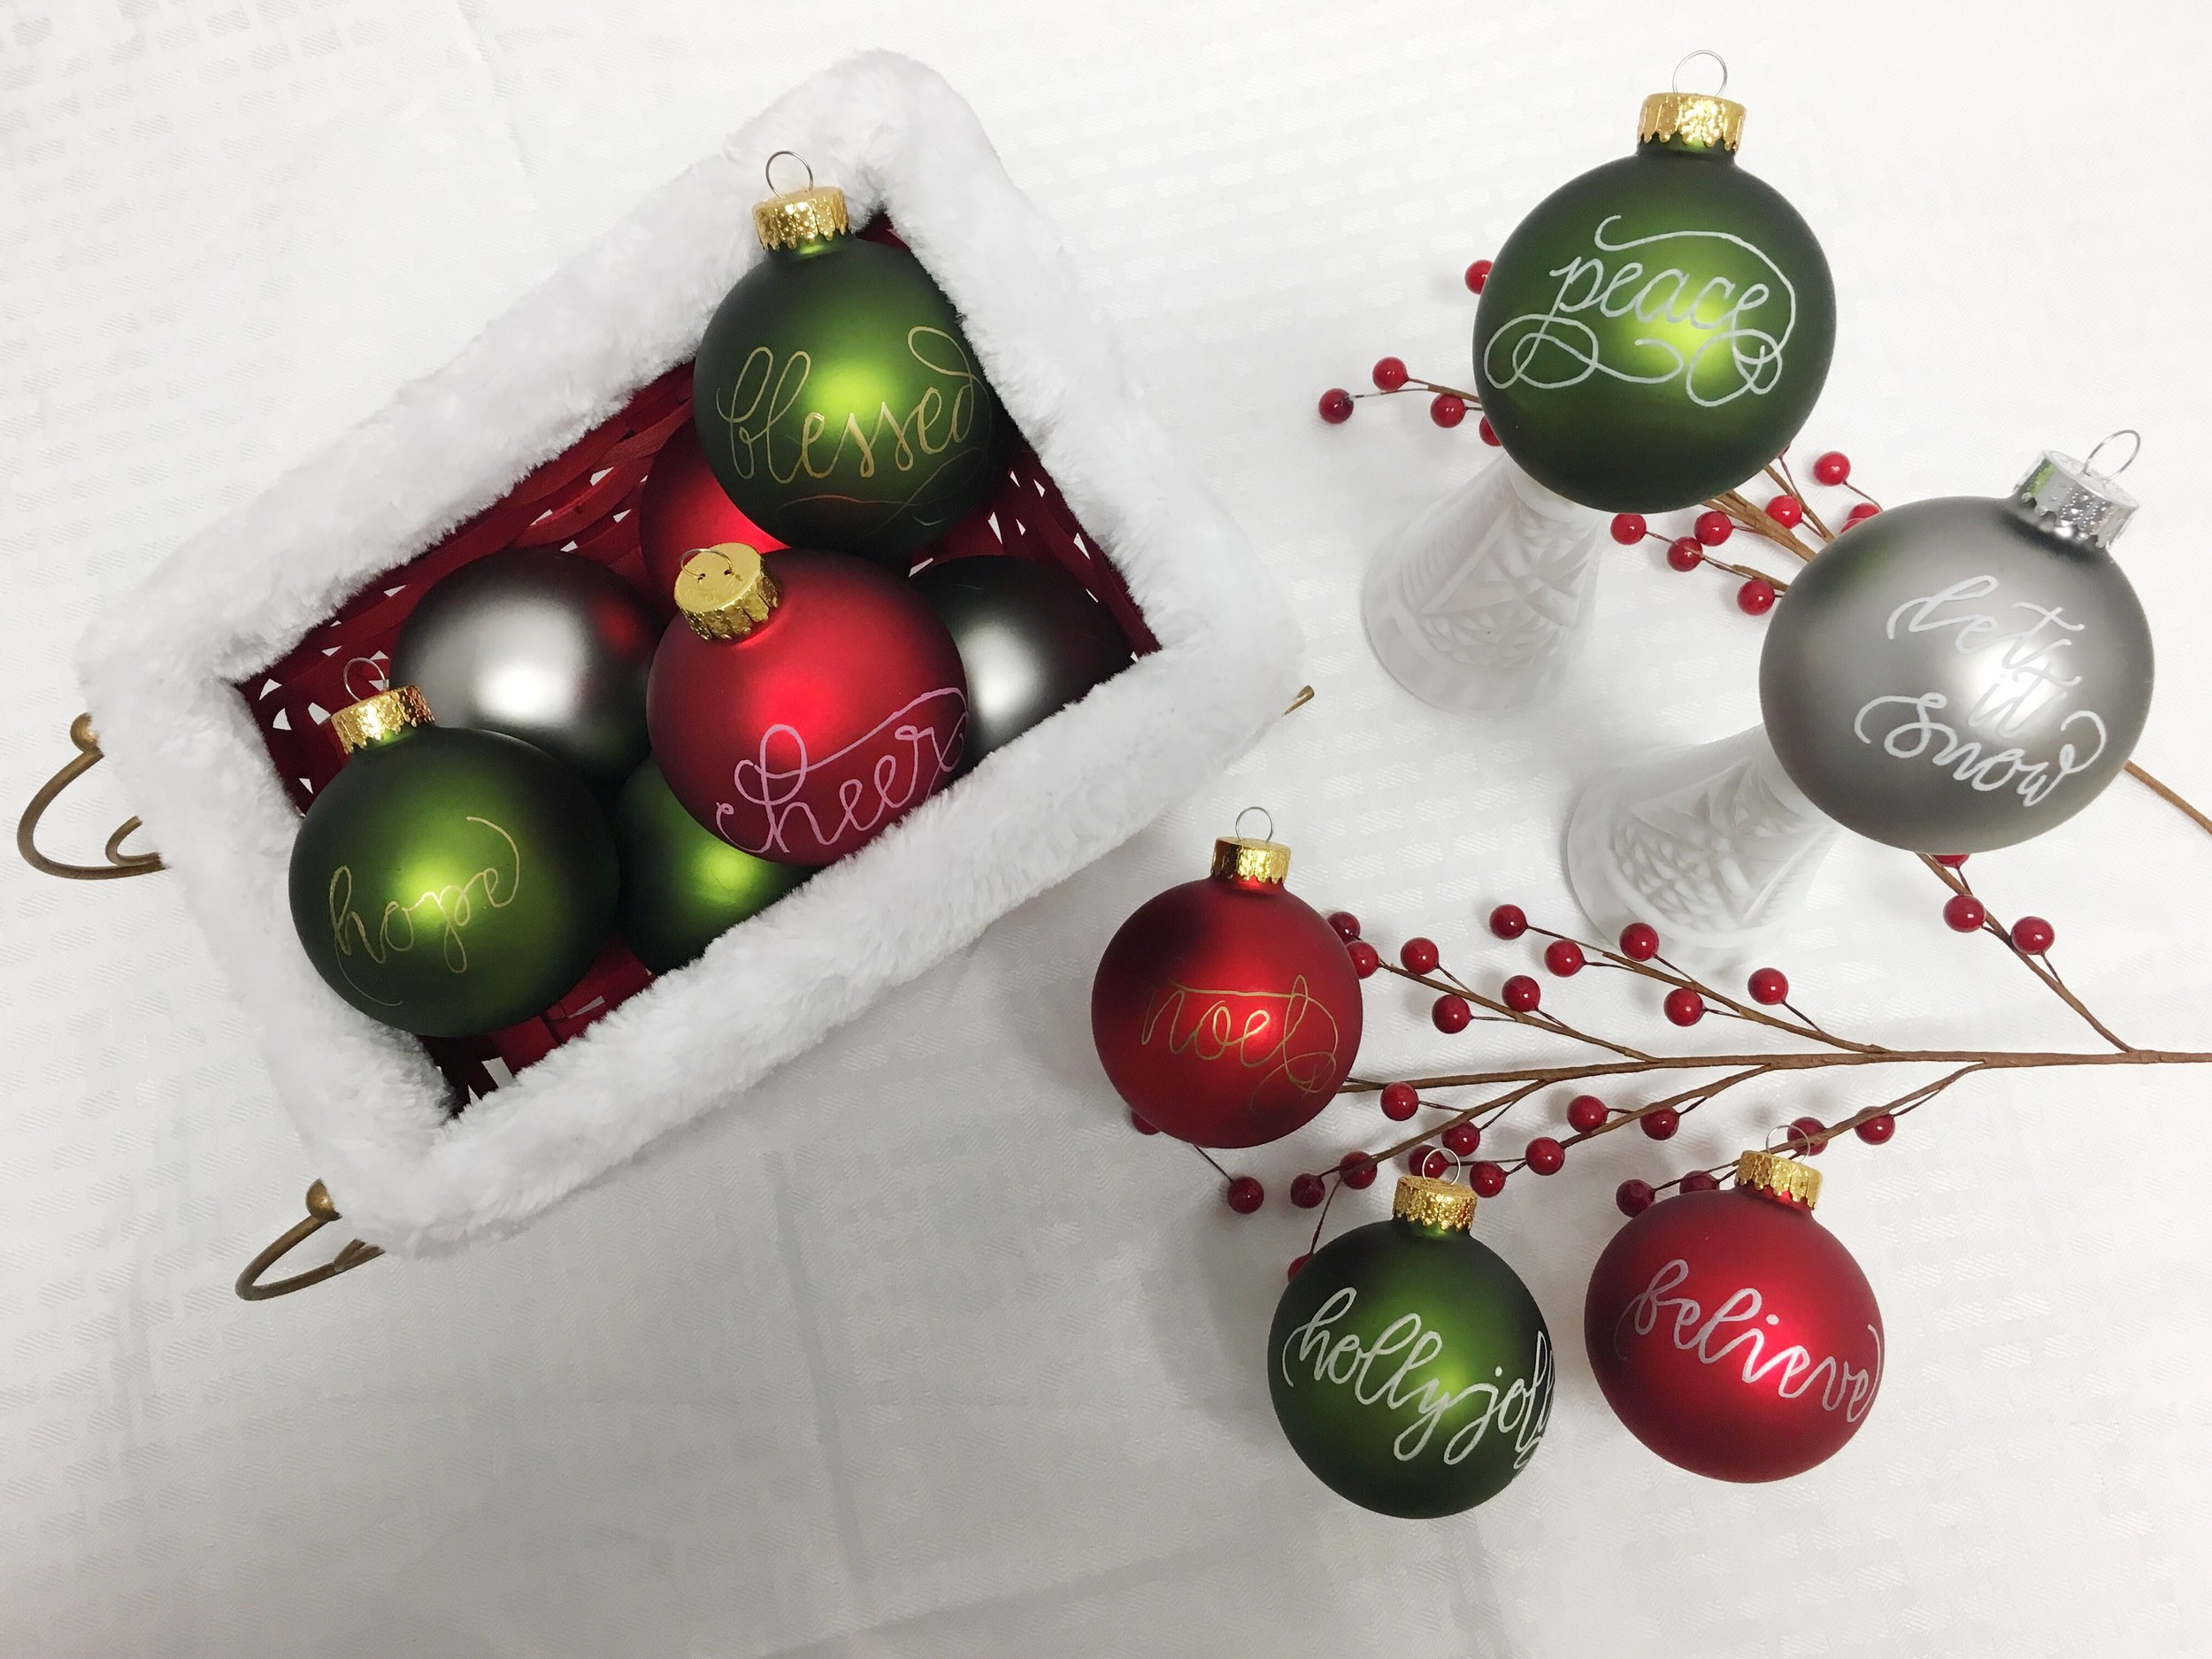 2016 Holiday Ornaments with Lettering.jpg